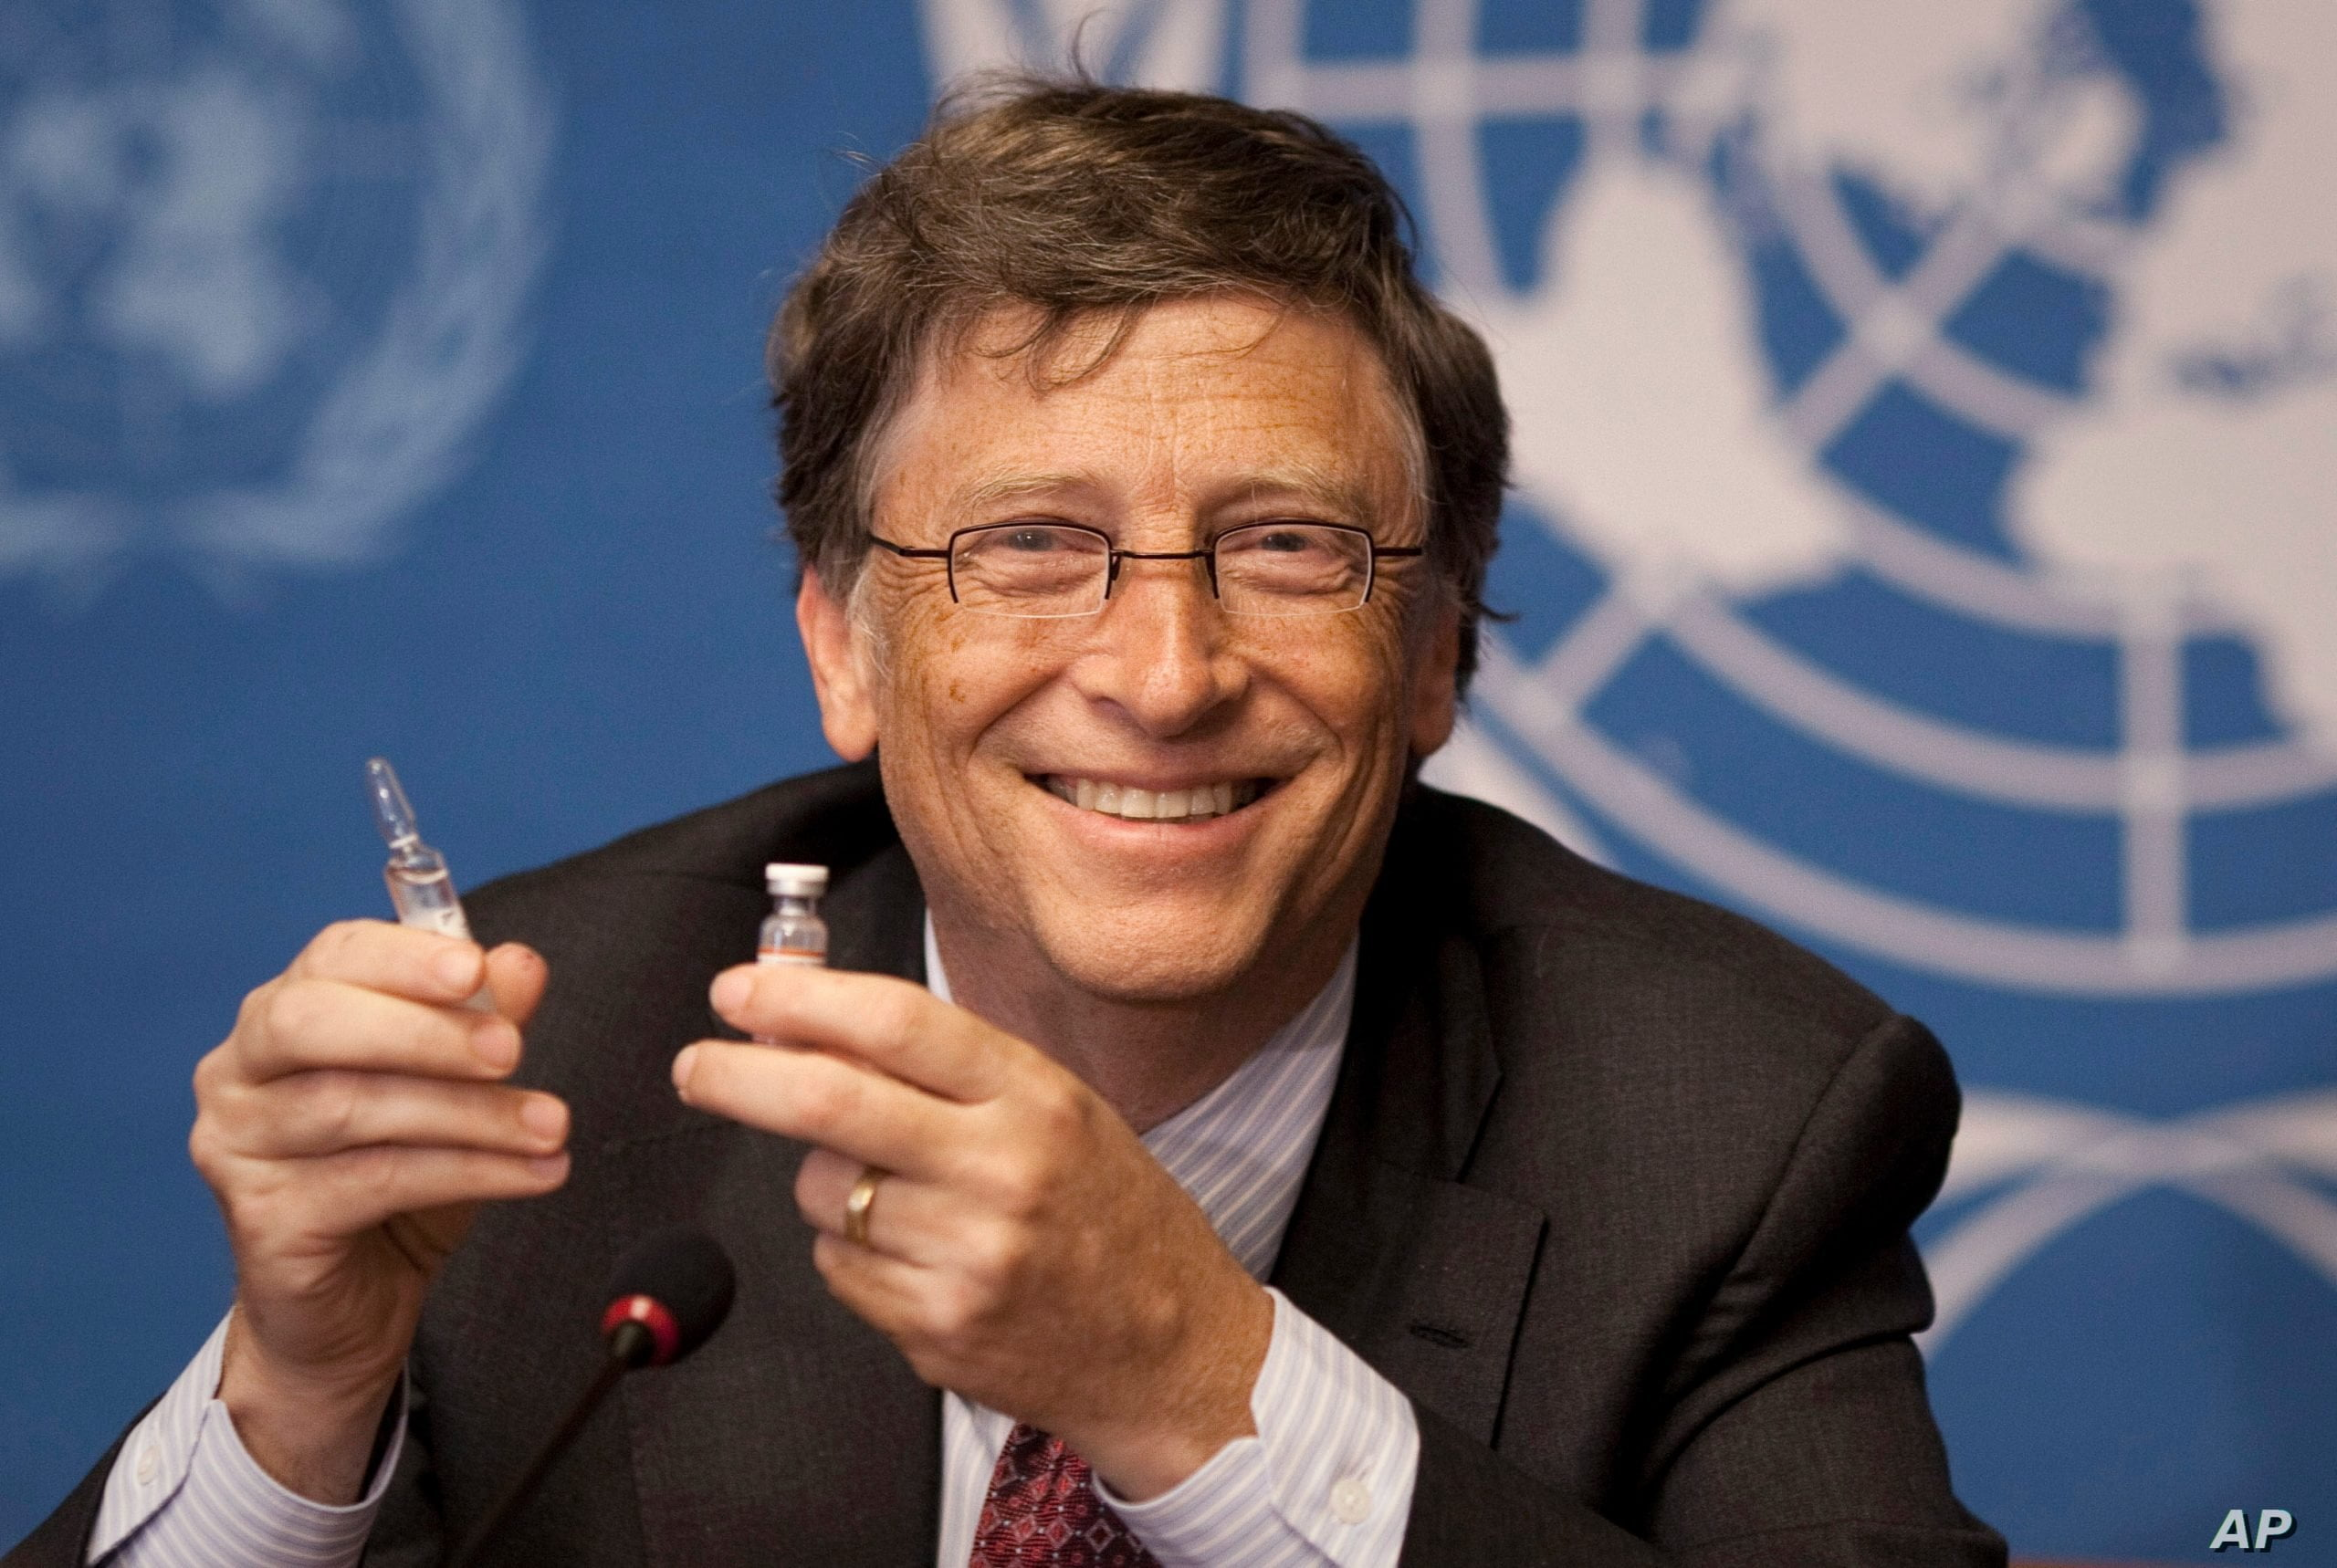 India may roll out covid vaccine in huge volumes next year: Bill Gates